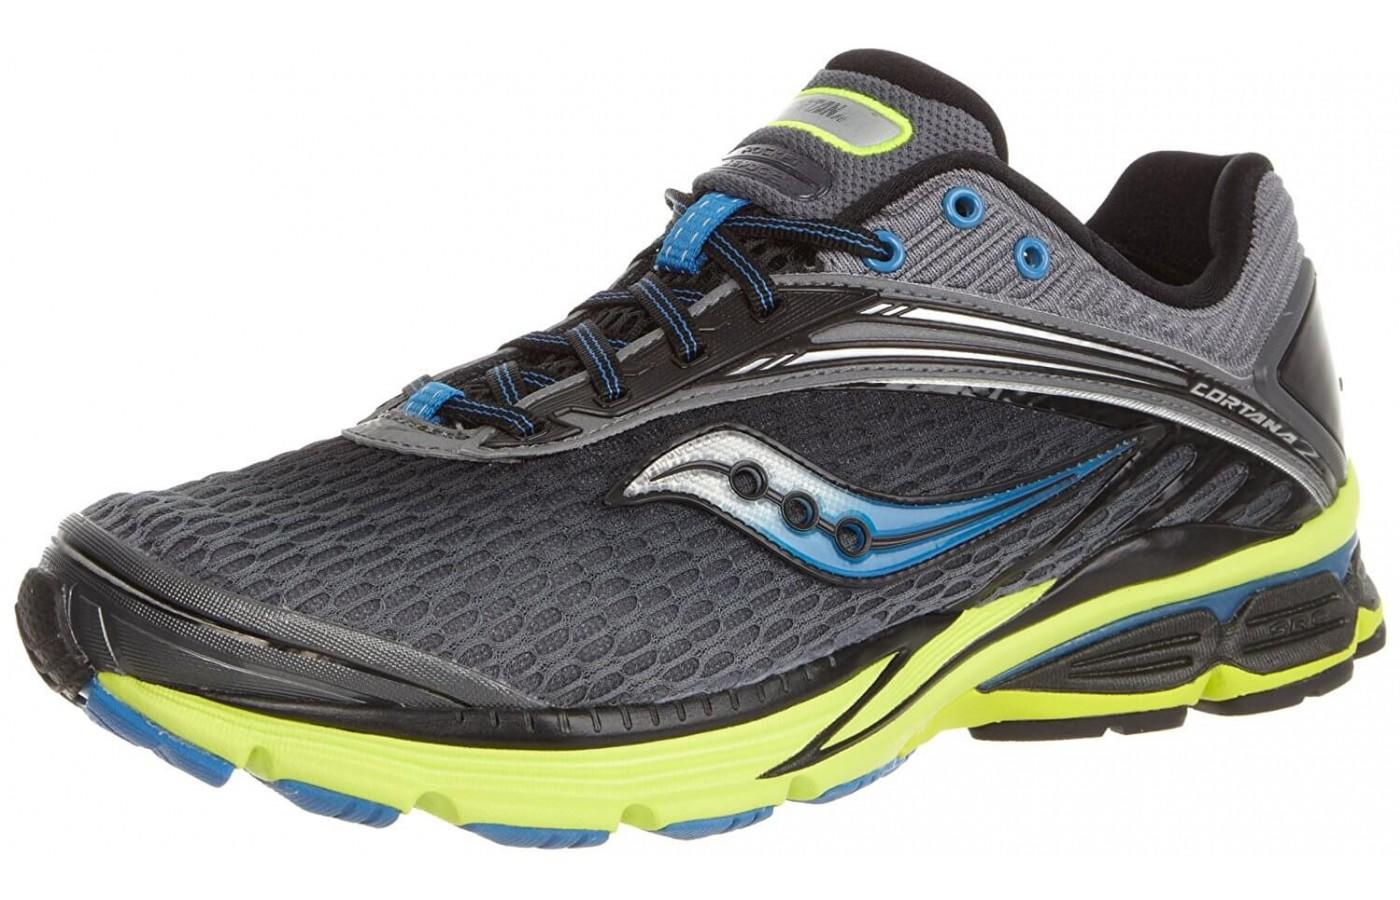 Saucony Cortana 2 updated, especially in the upper